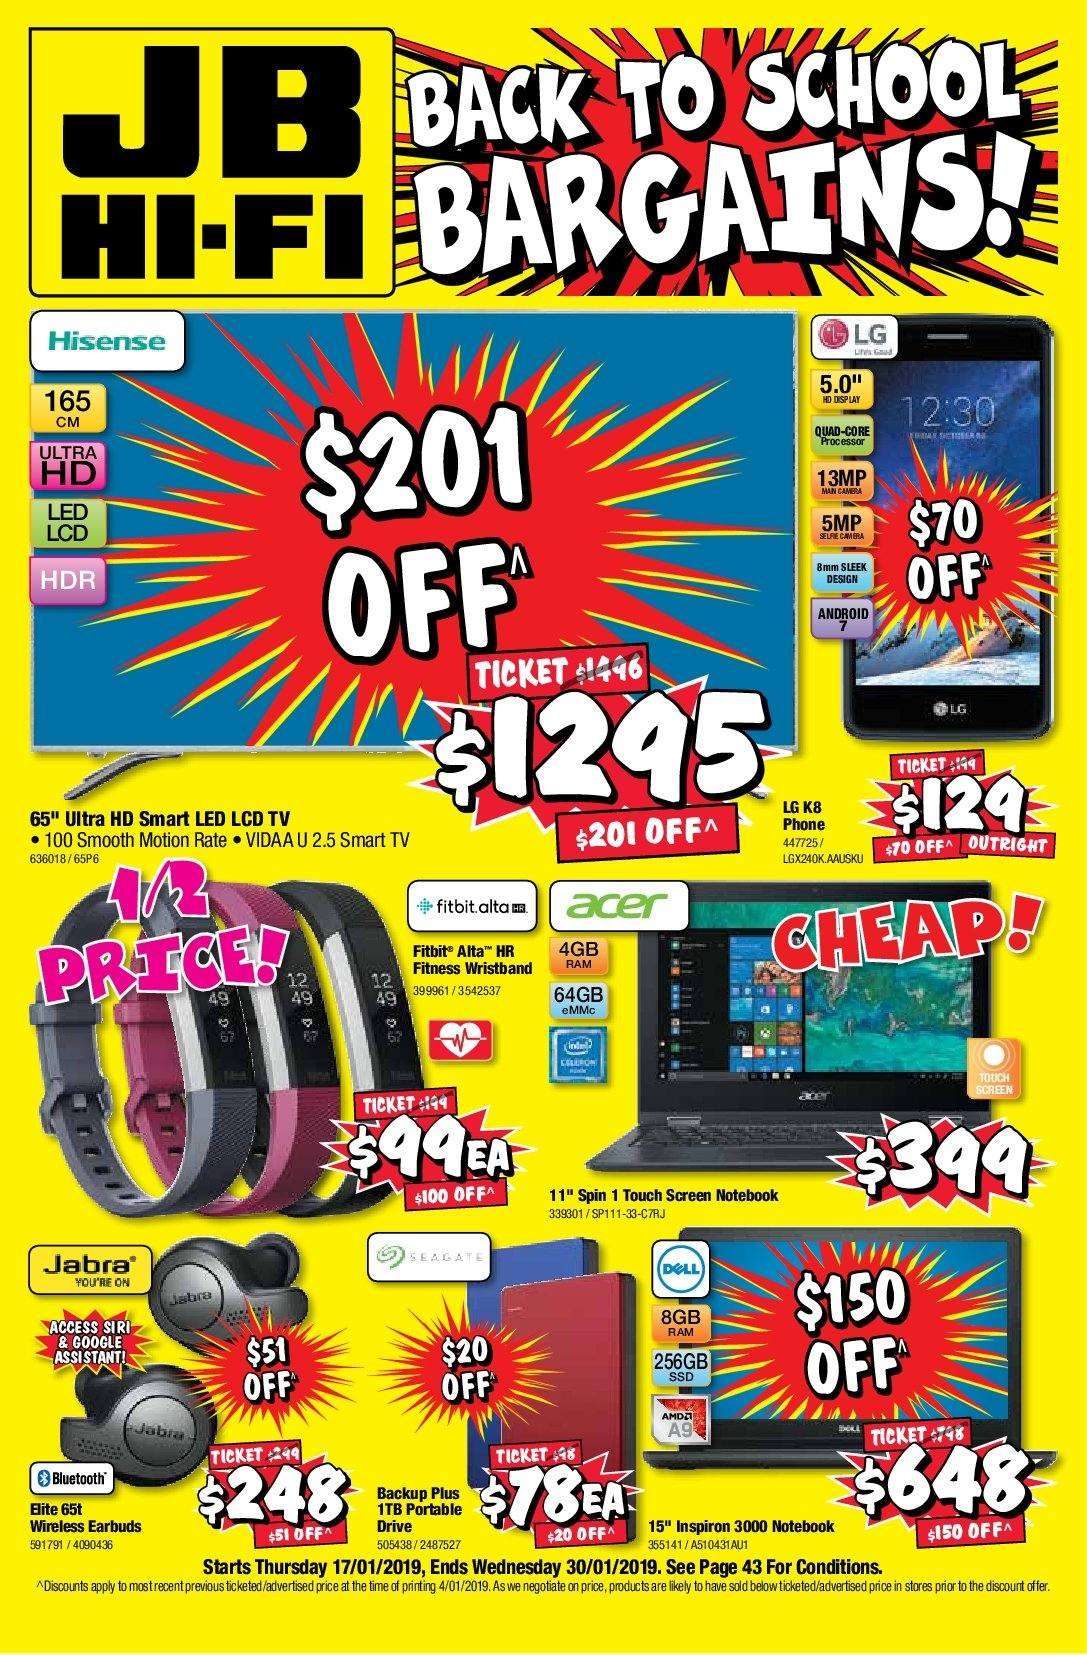 JB Hi-Fi Catalogue - 17.1.2019 - 30.1.2019 - Sales products - android, bluetooth, camera, dell, google, lg, smart tv, uhd tv, ultra hd, notebook, processor, wireless. Page 1.